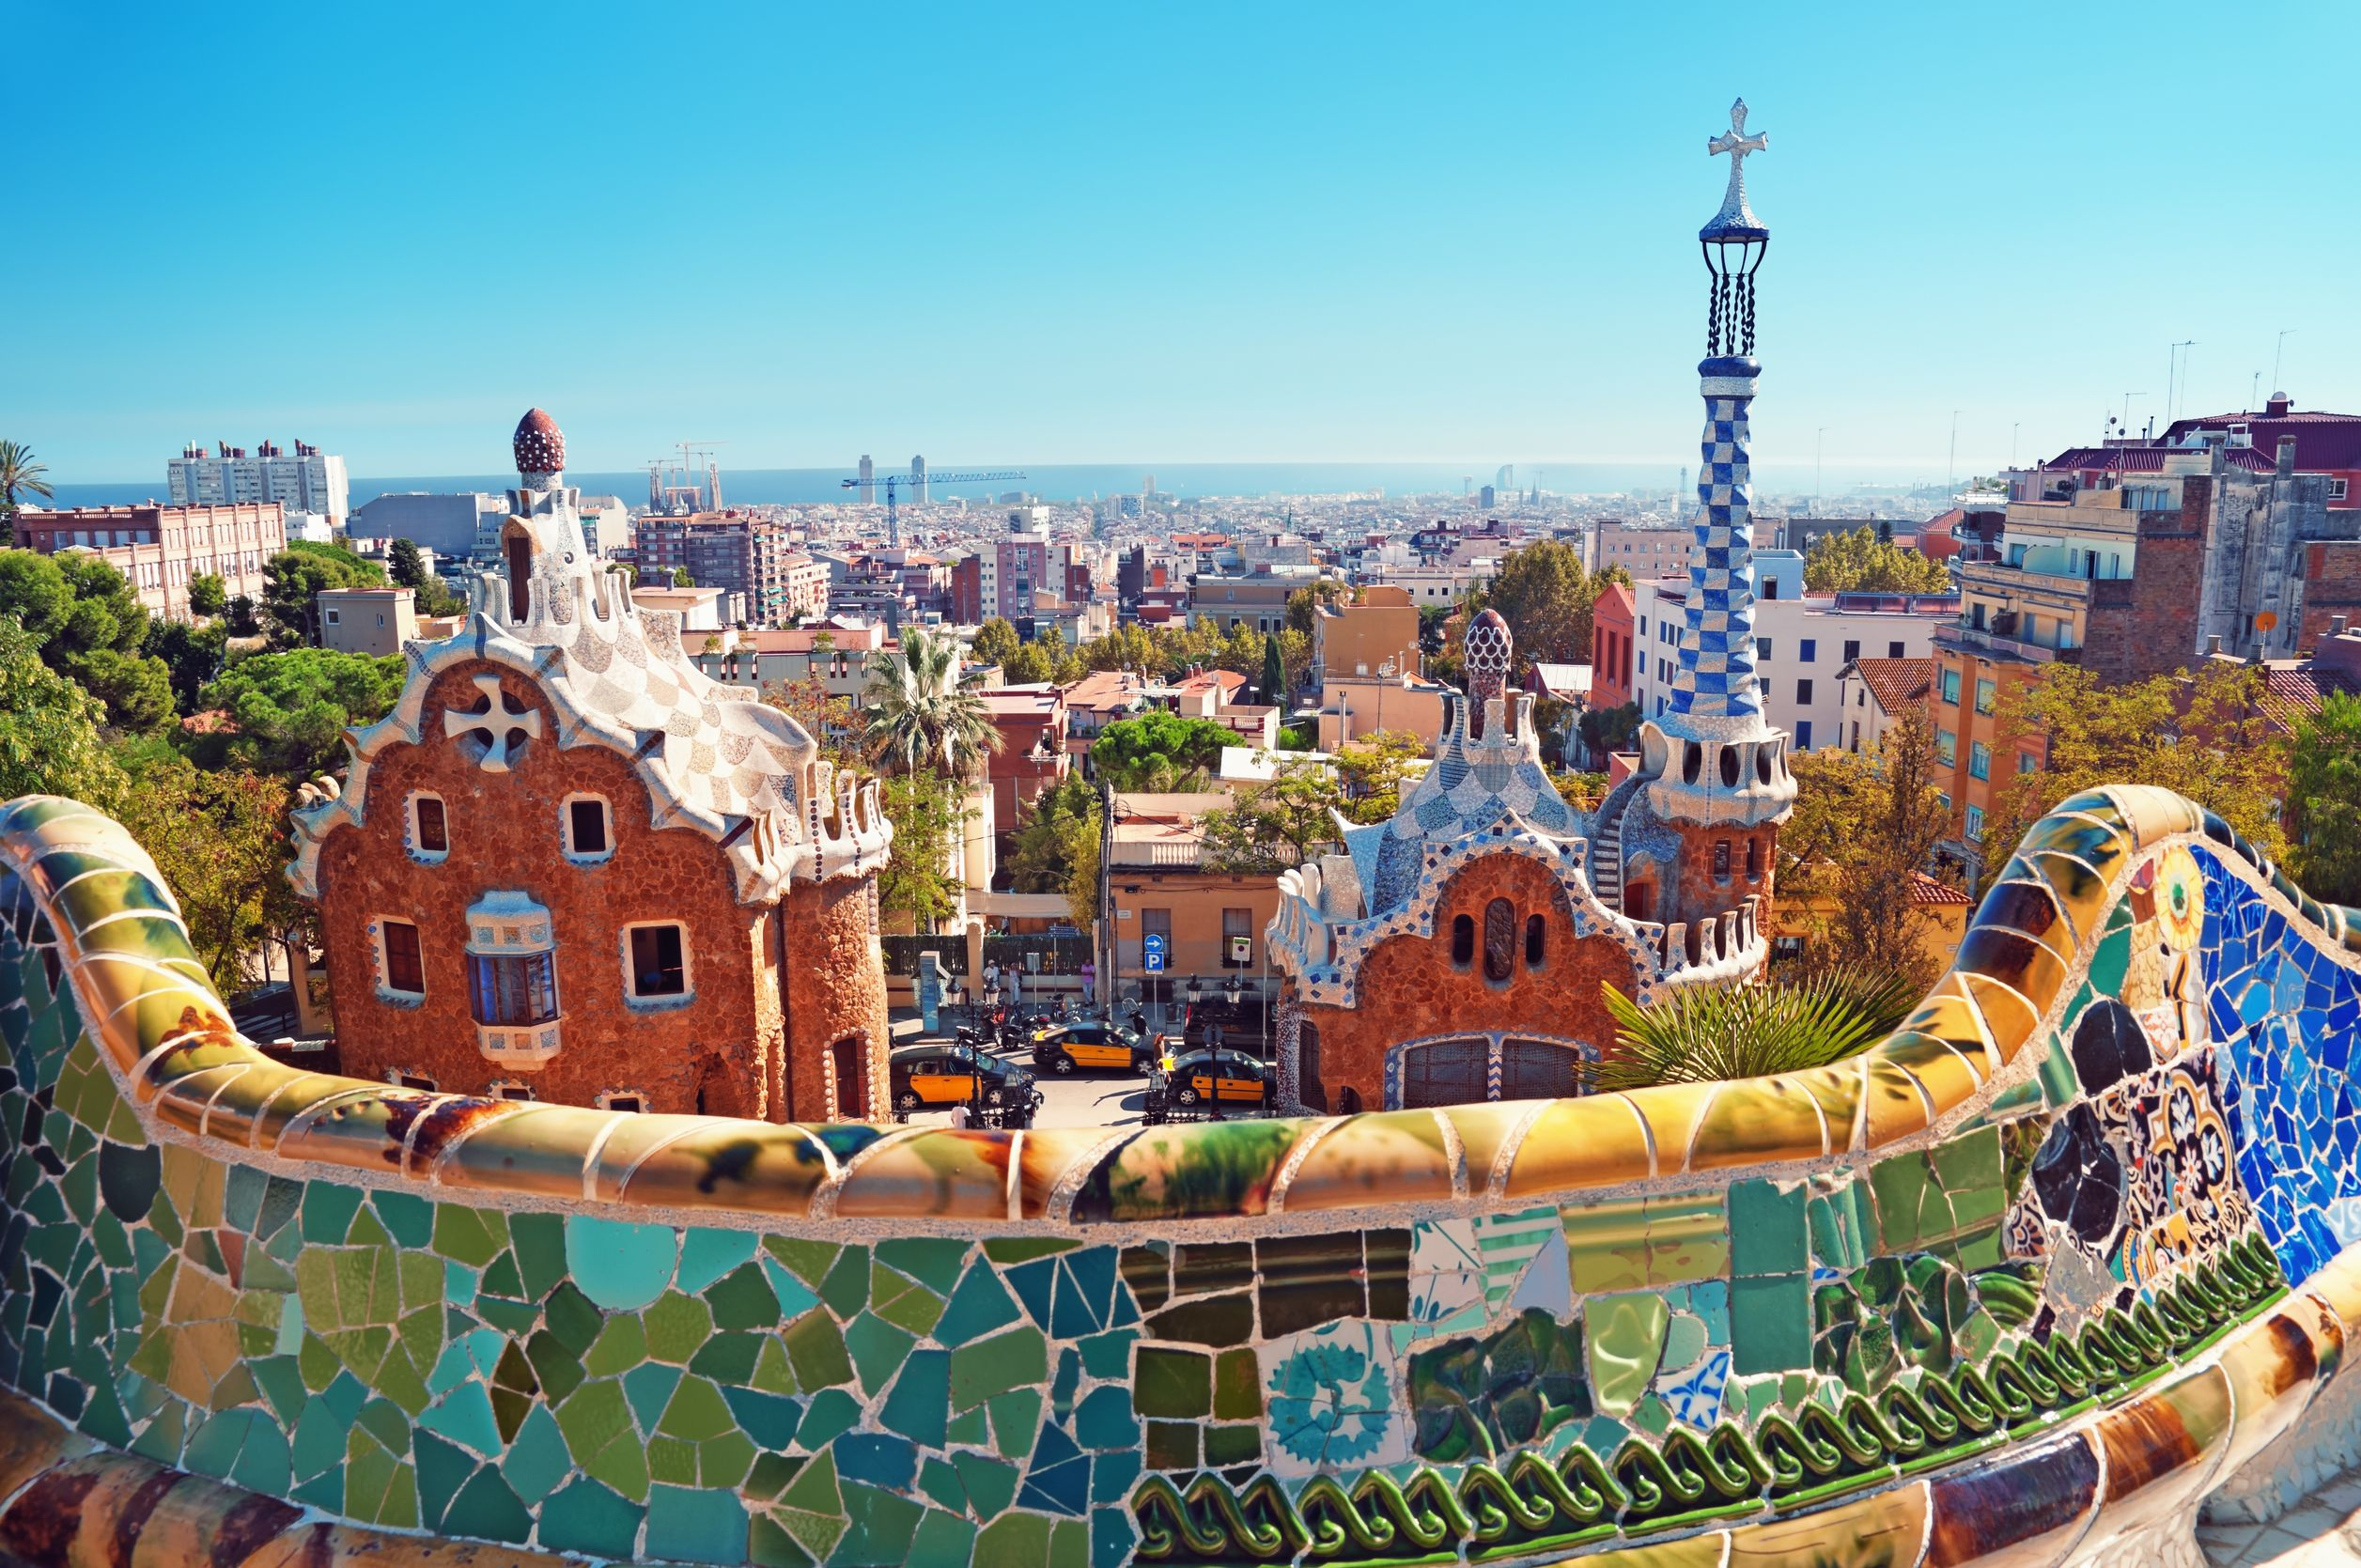 Parque Guell Bing Images